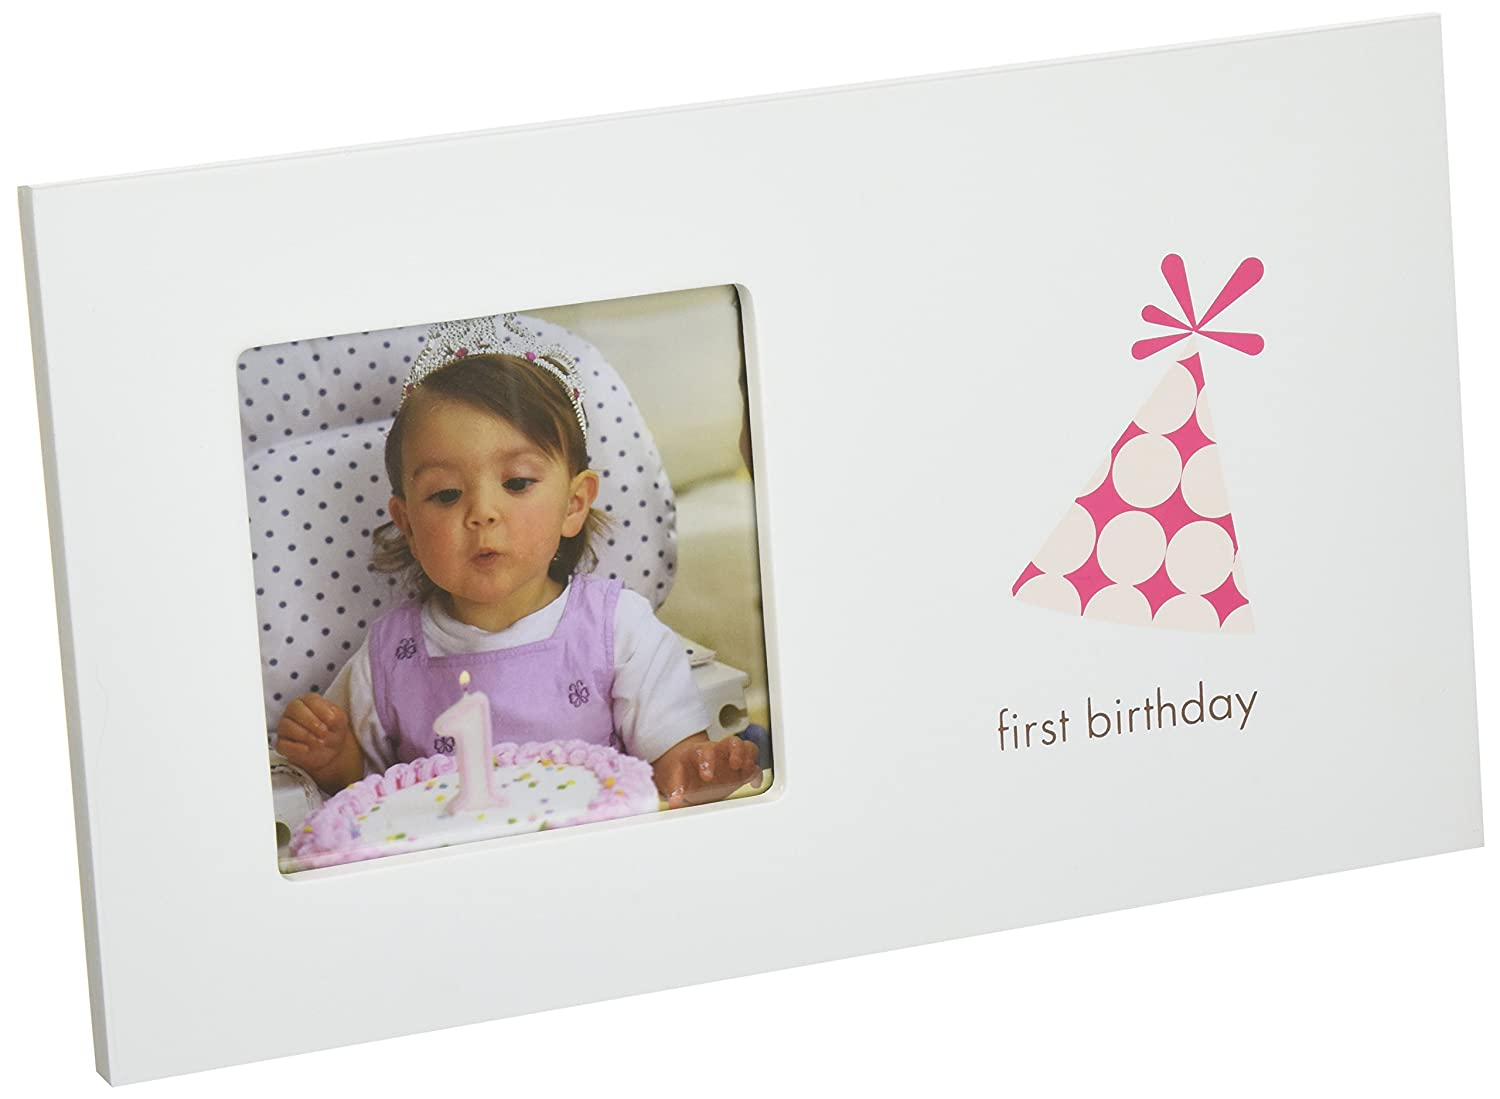 Amazon pearhead first birthday frame girl baby keepsake amazon pearhead first birthday frame girl baby keepsake frames baby jeuxipadfo Images